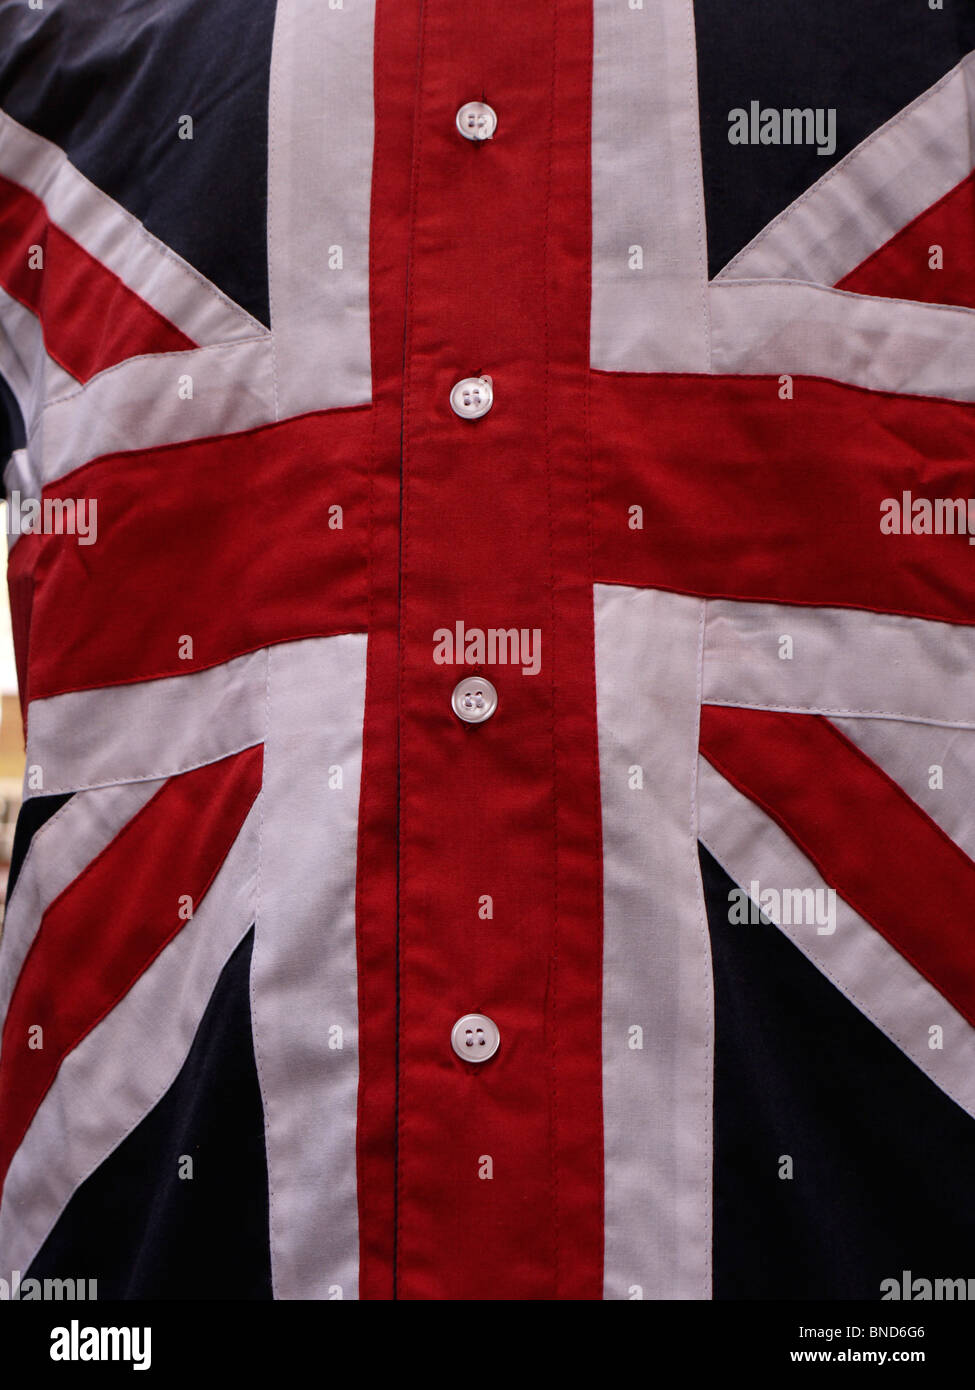 union jack flag on shirt, in shop display  carnaby street - Stock Image